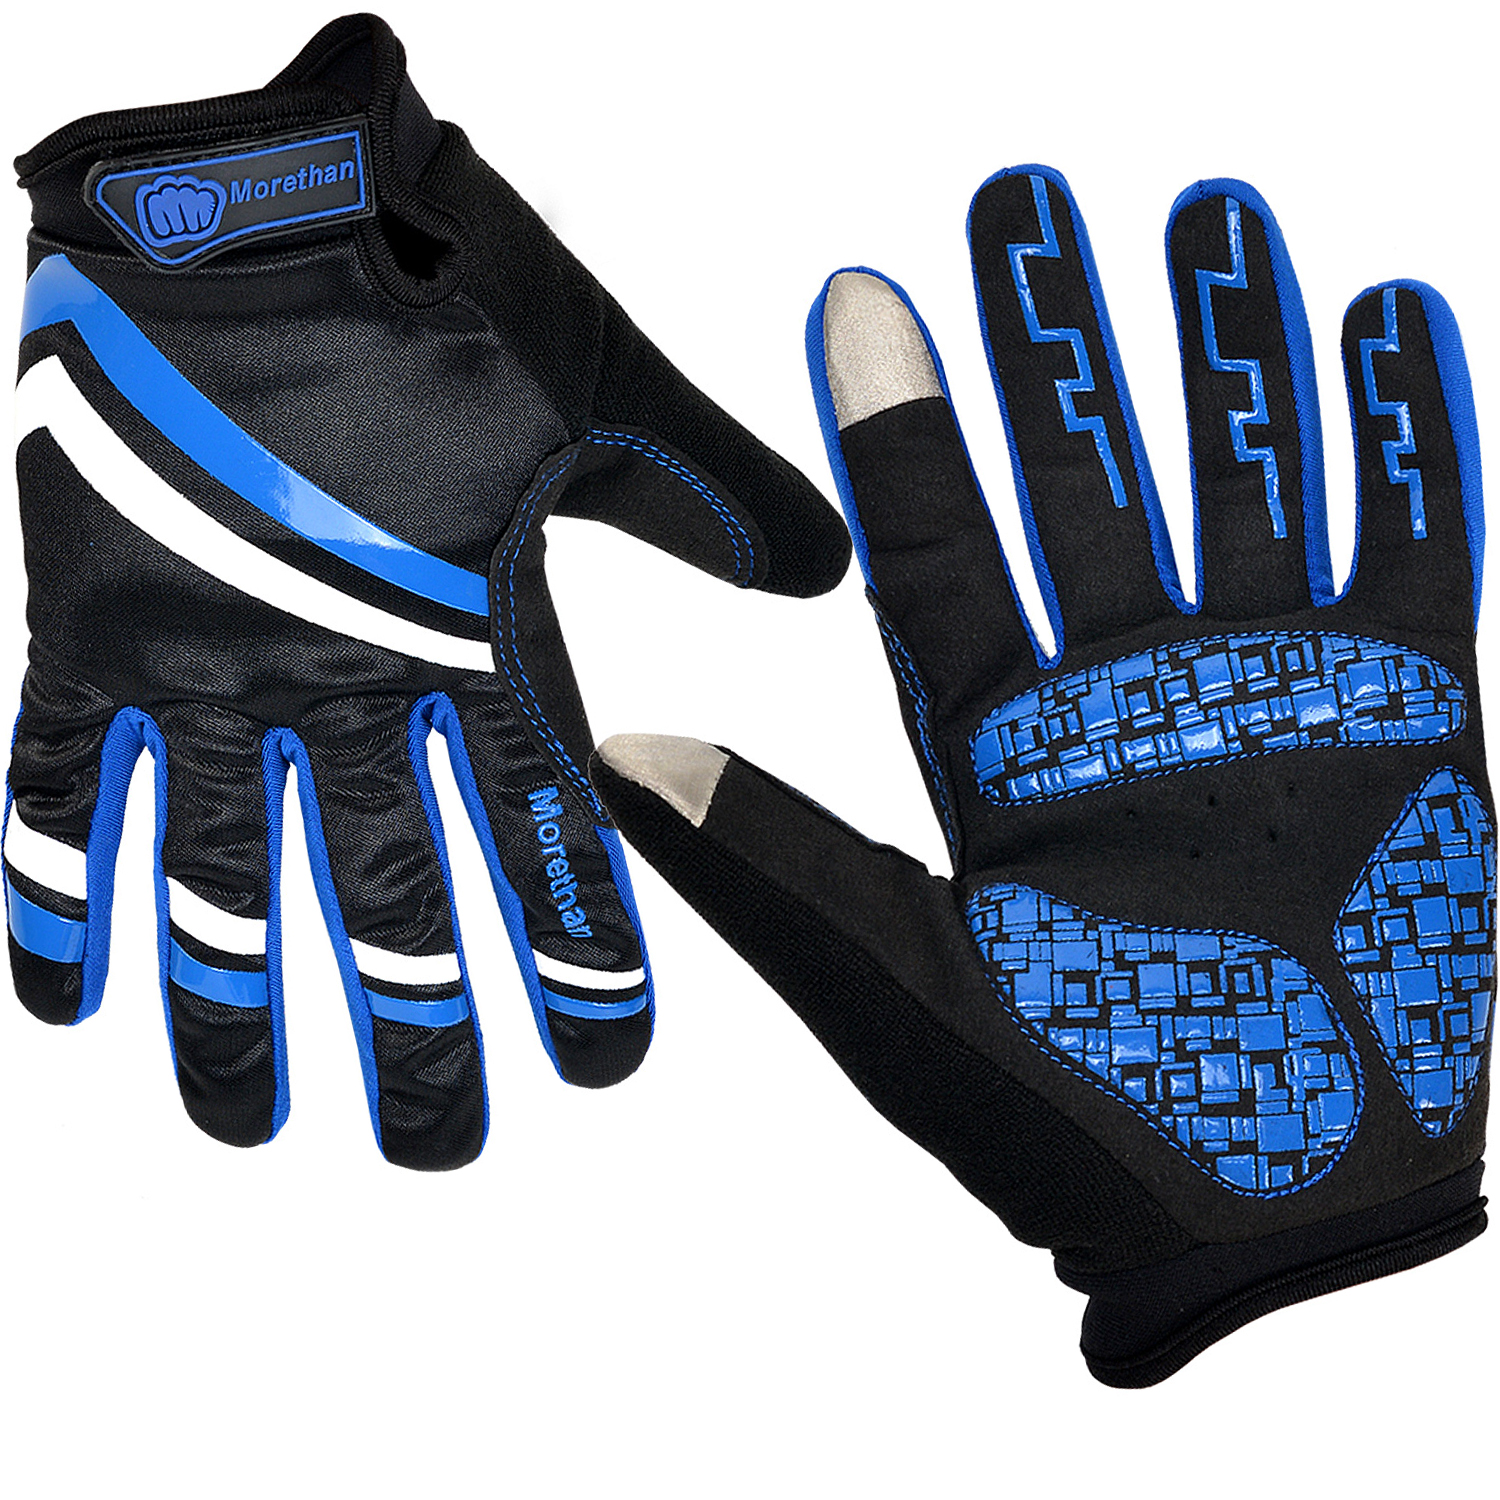 Cycling Gloves Touch-Screen Bike Bicycle Motor Sports Full Finger Windproof Design L XL by